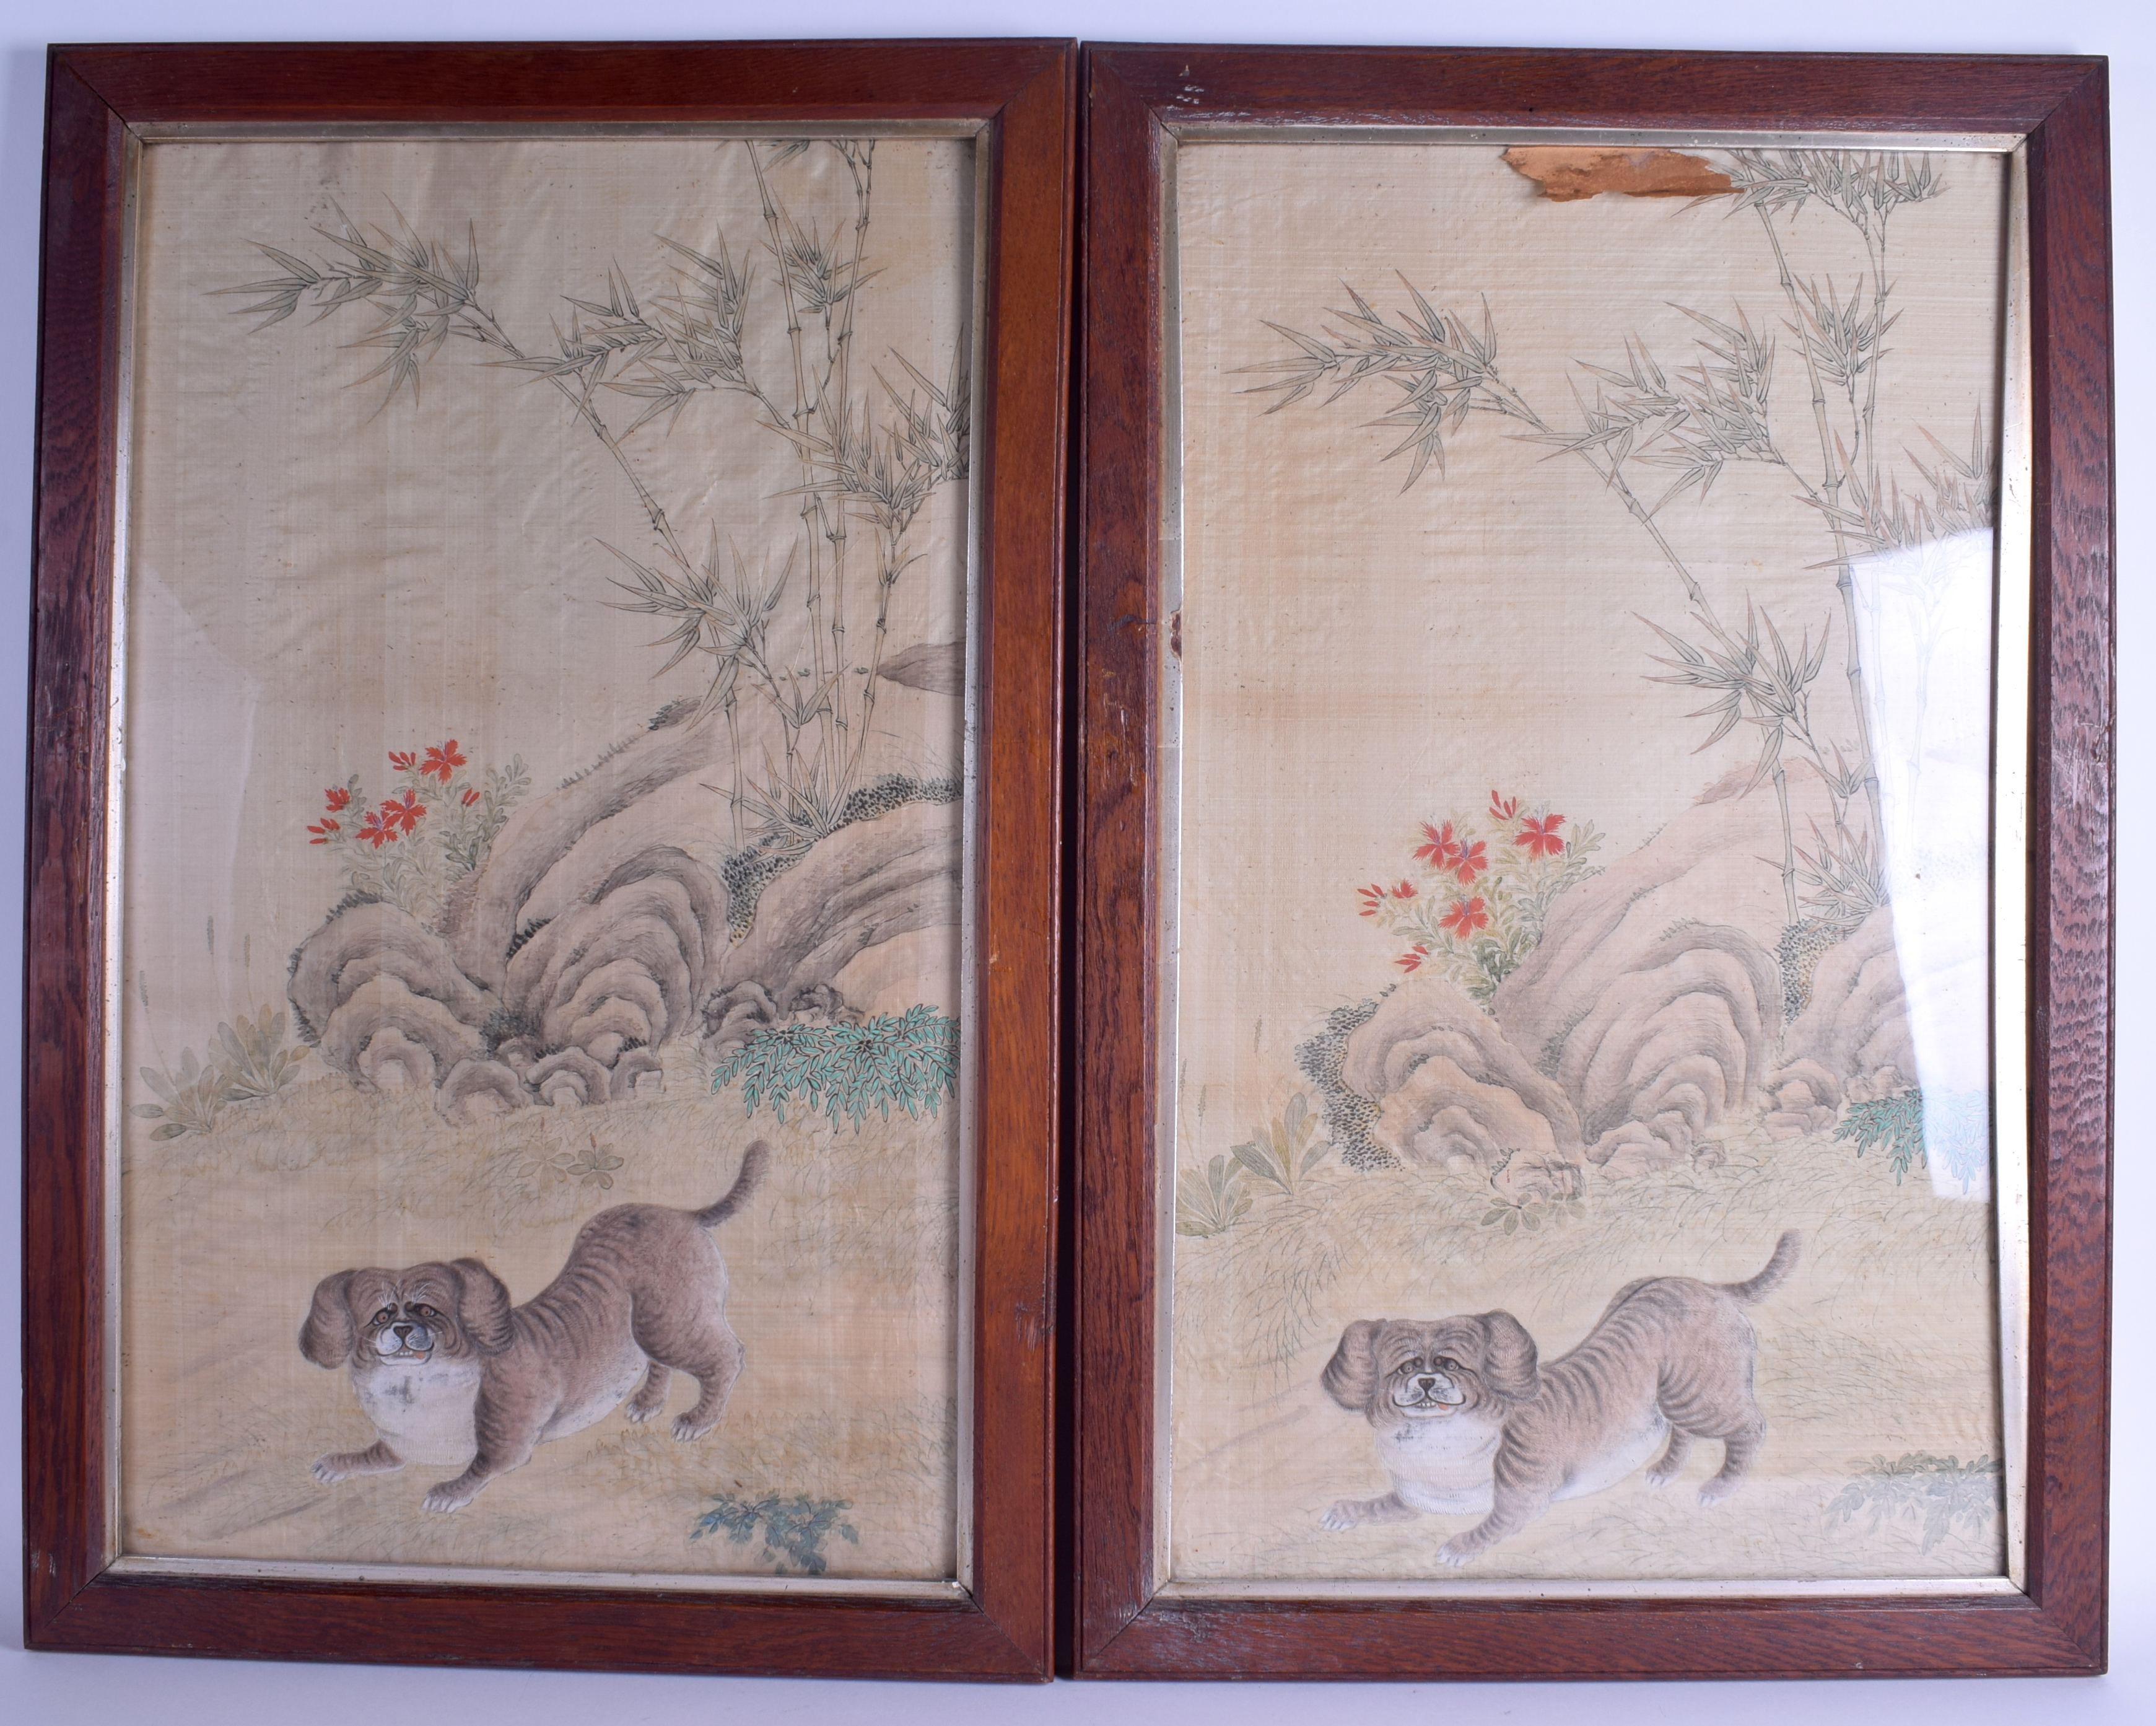 Lot 1517 - A PAIR OF 19TH CENTURY CHINESE FRAMED WATERCOLOURS depicting a roaming hound within a landscape. 63